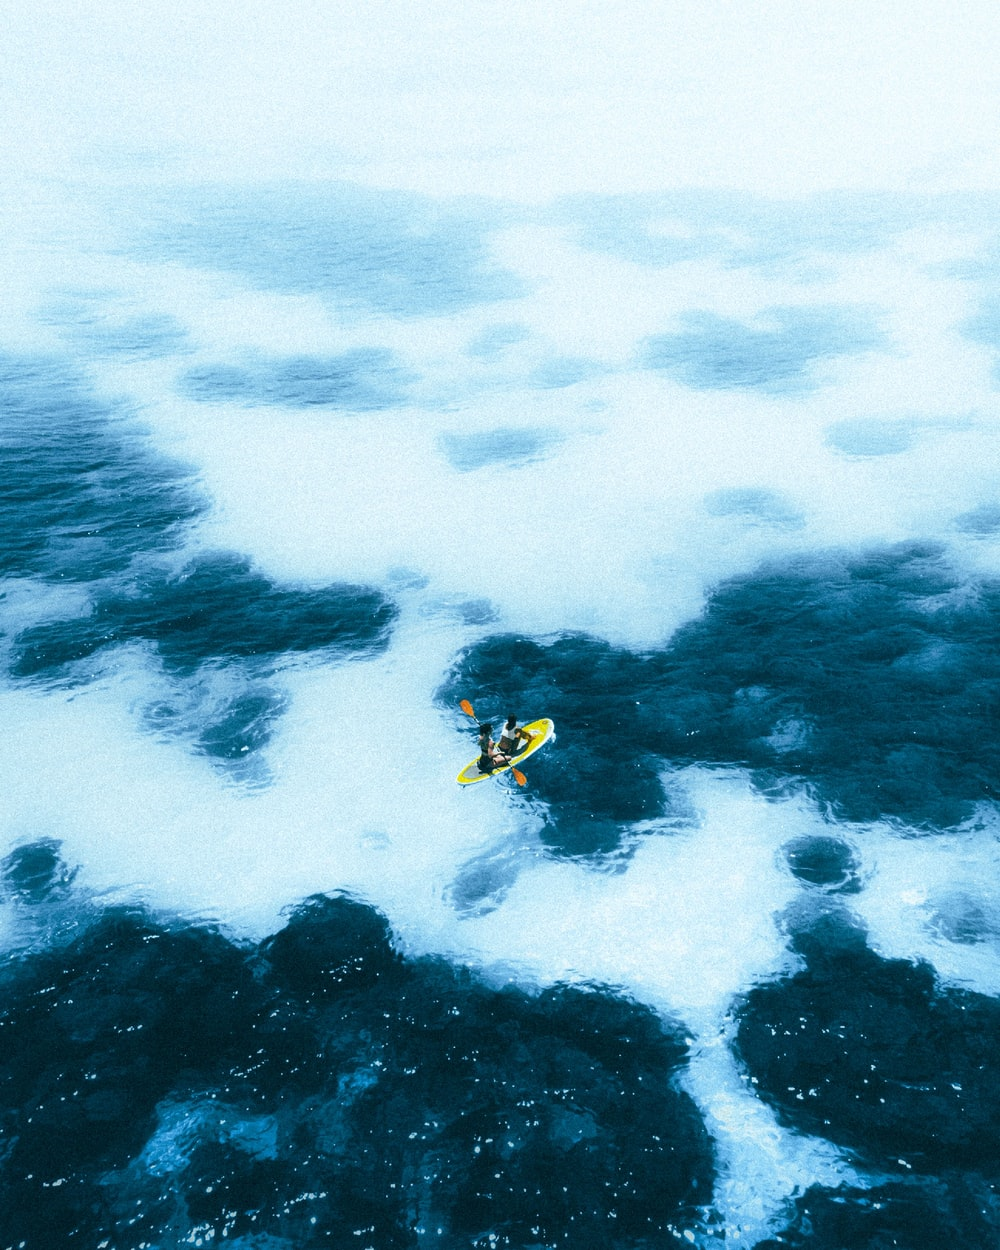 person in yellow and black wetsuit surfing on blue ocean water during daytime